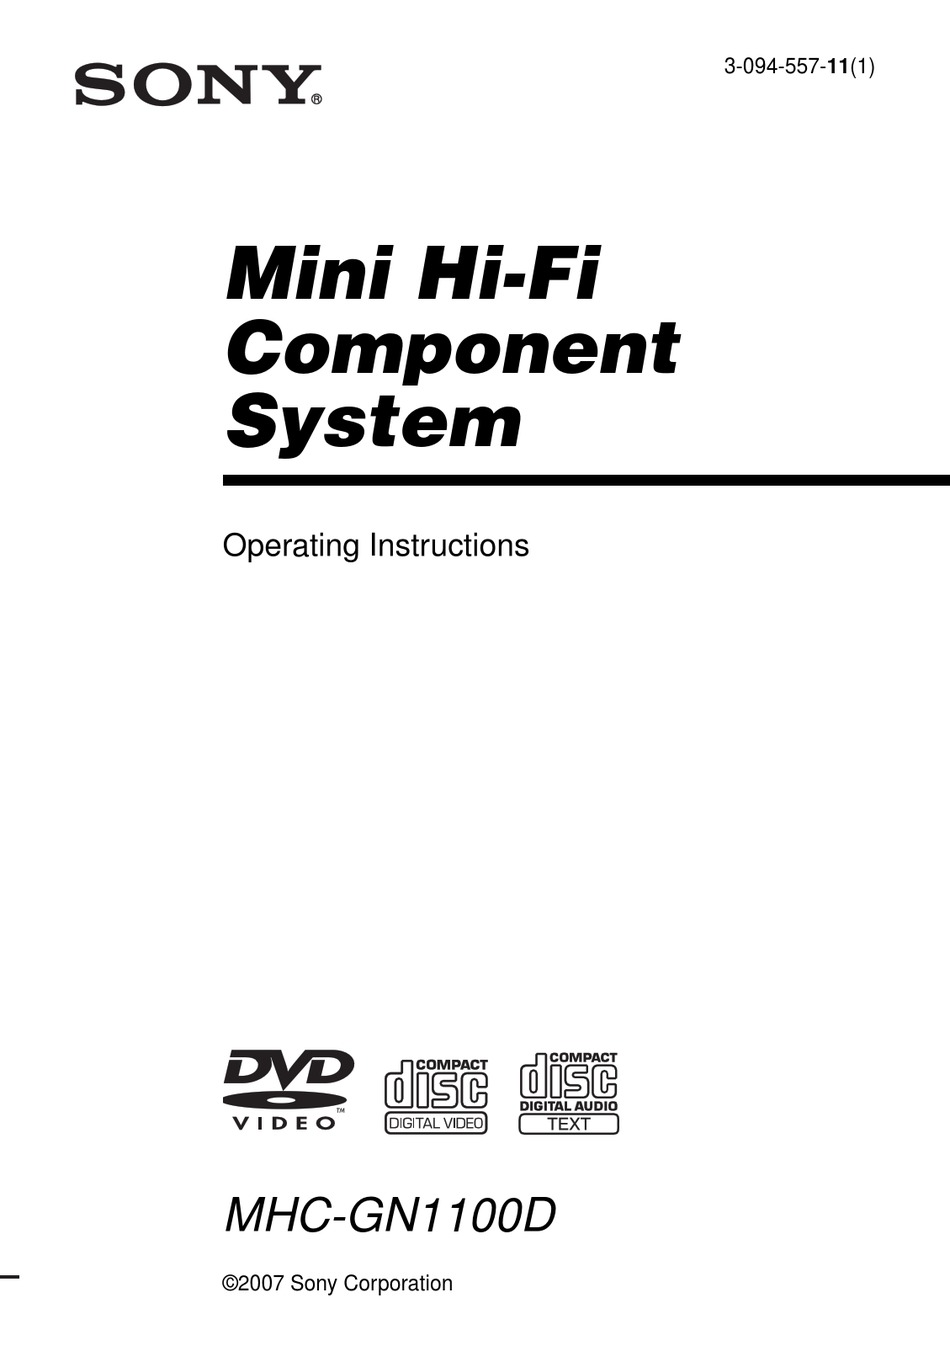 SONY MHC-GN1100D OPERATING INSTRUCTIONS MANUAL Pdf